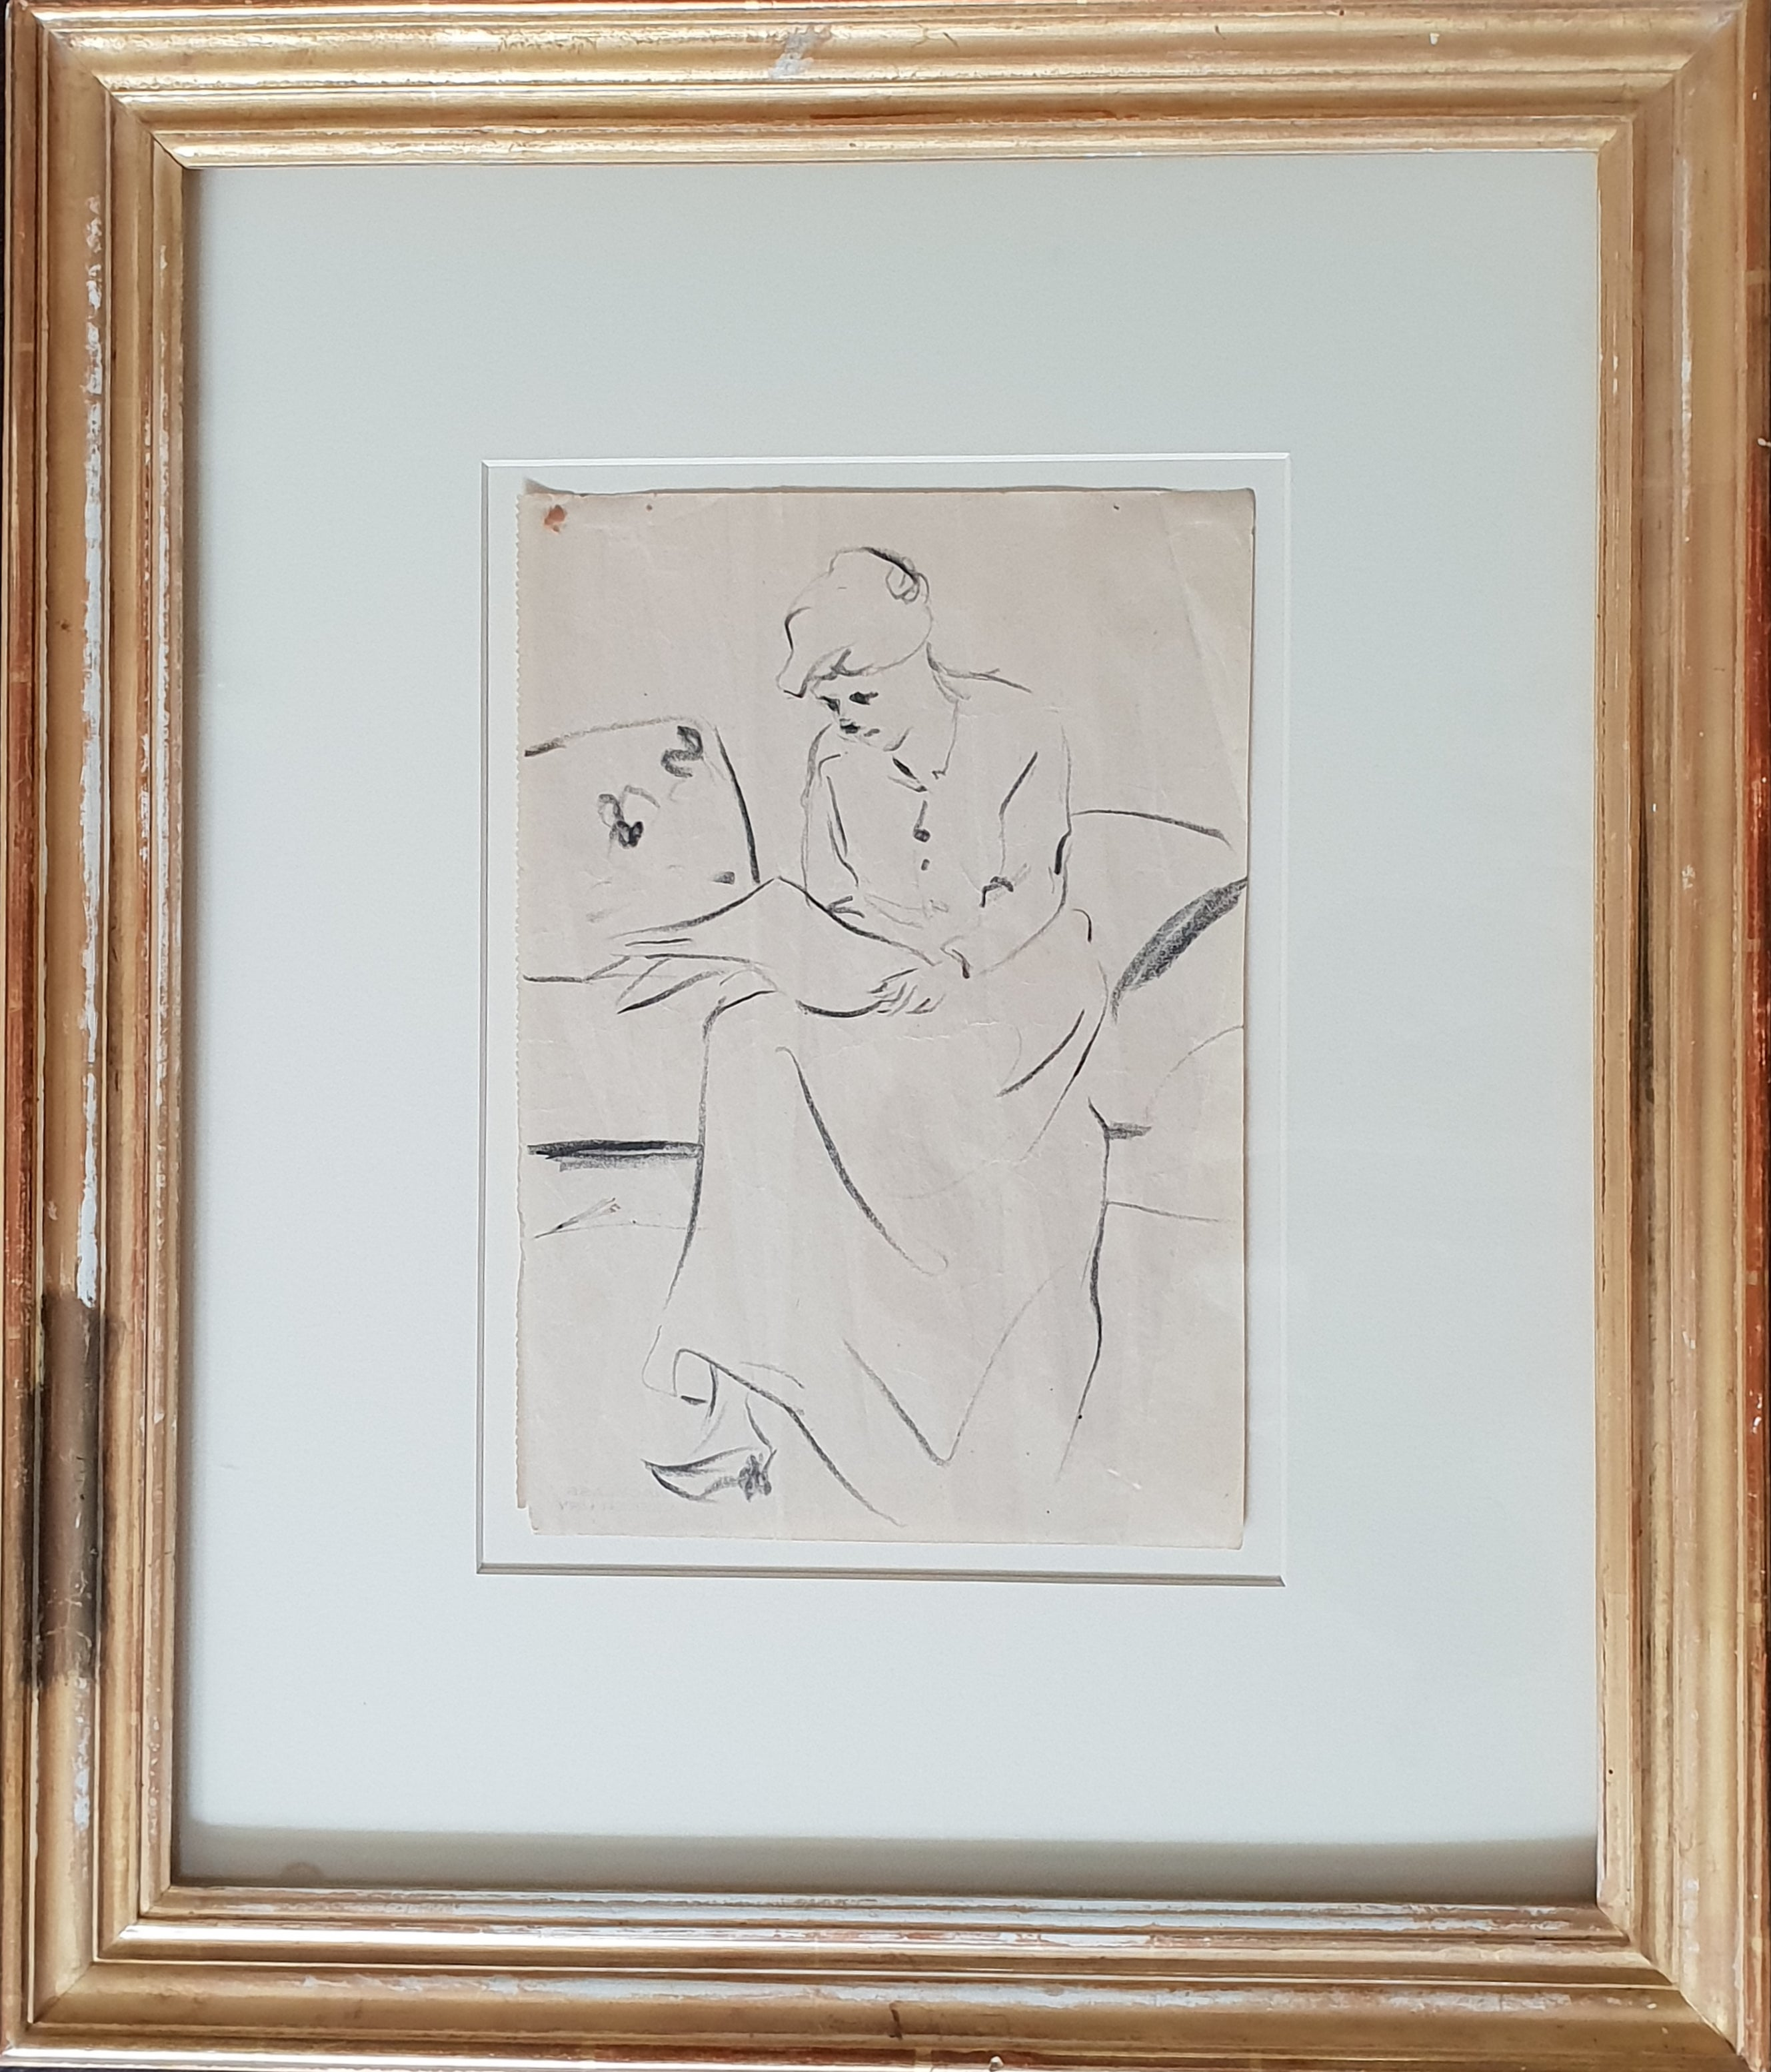 Pencil drawing by lesser ury about 1900